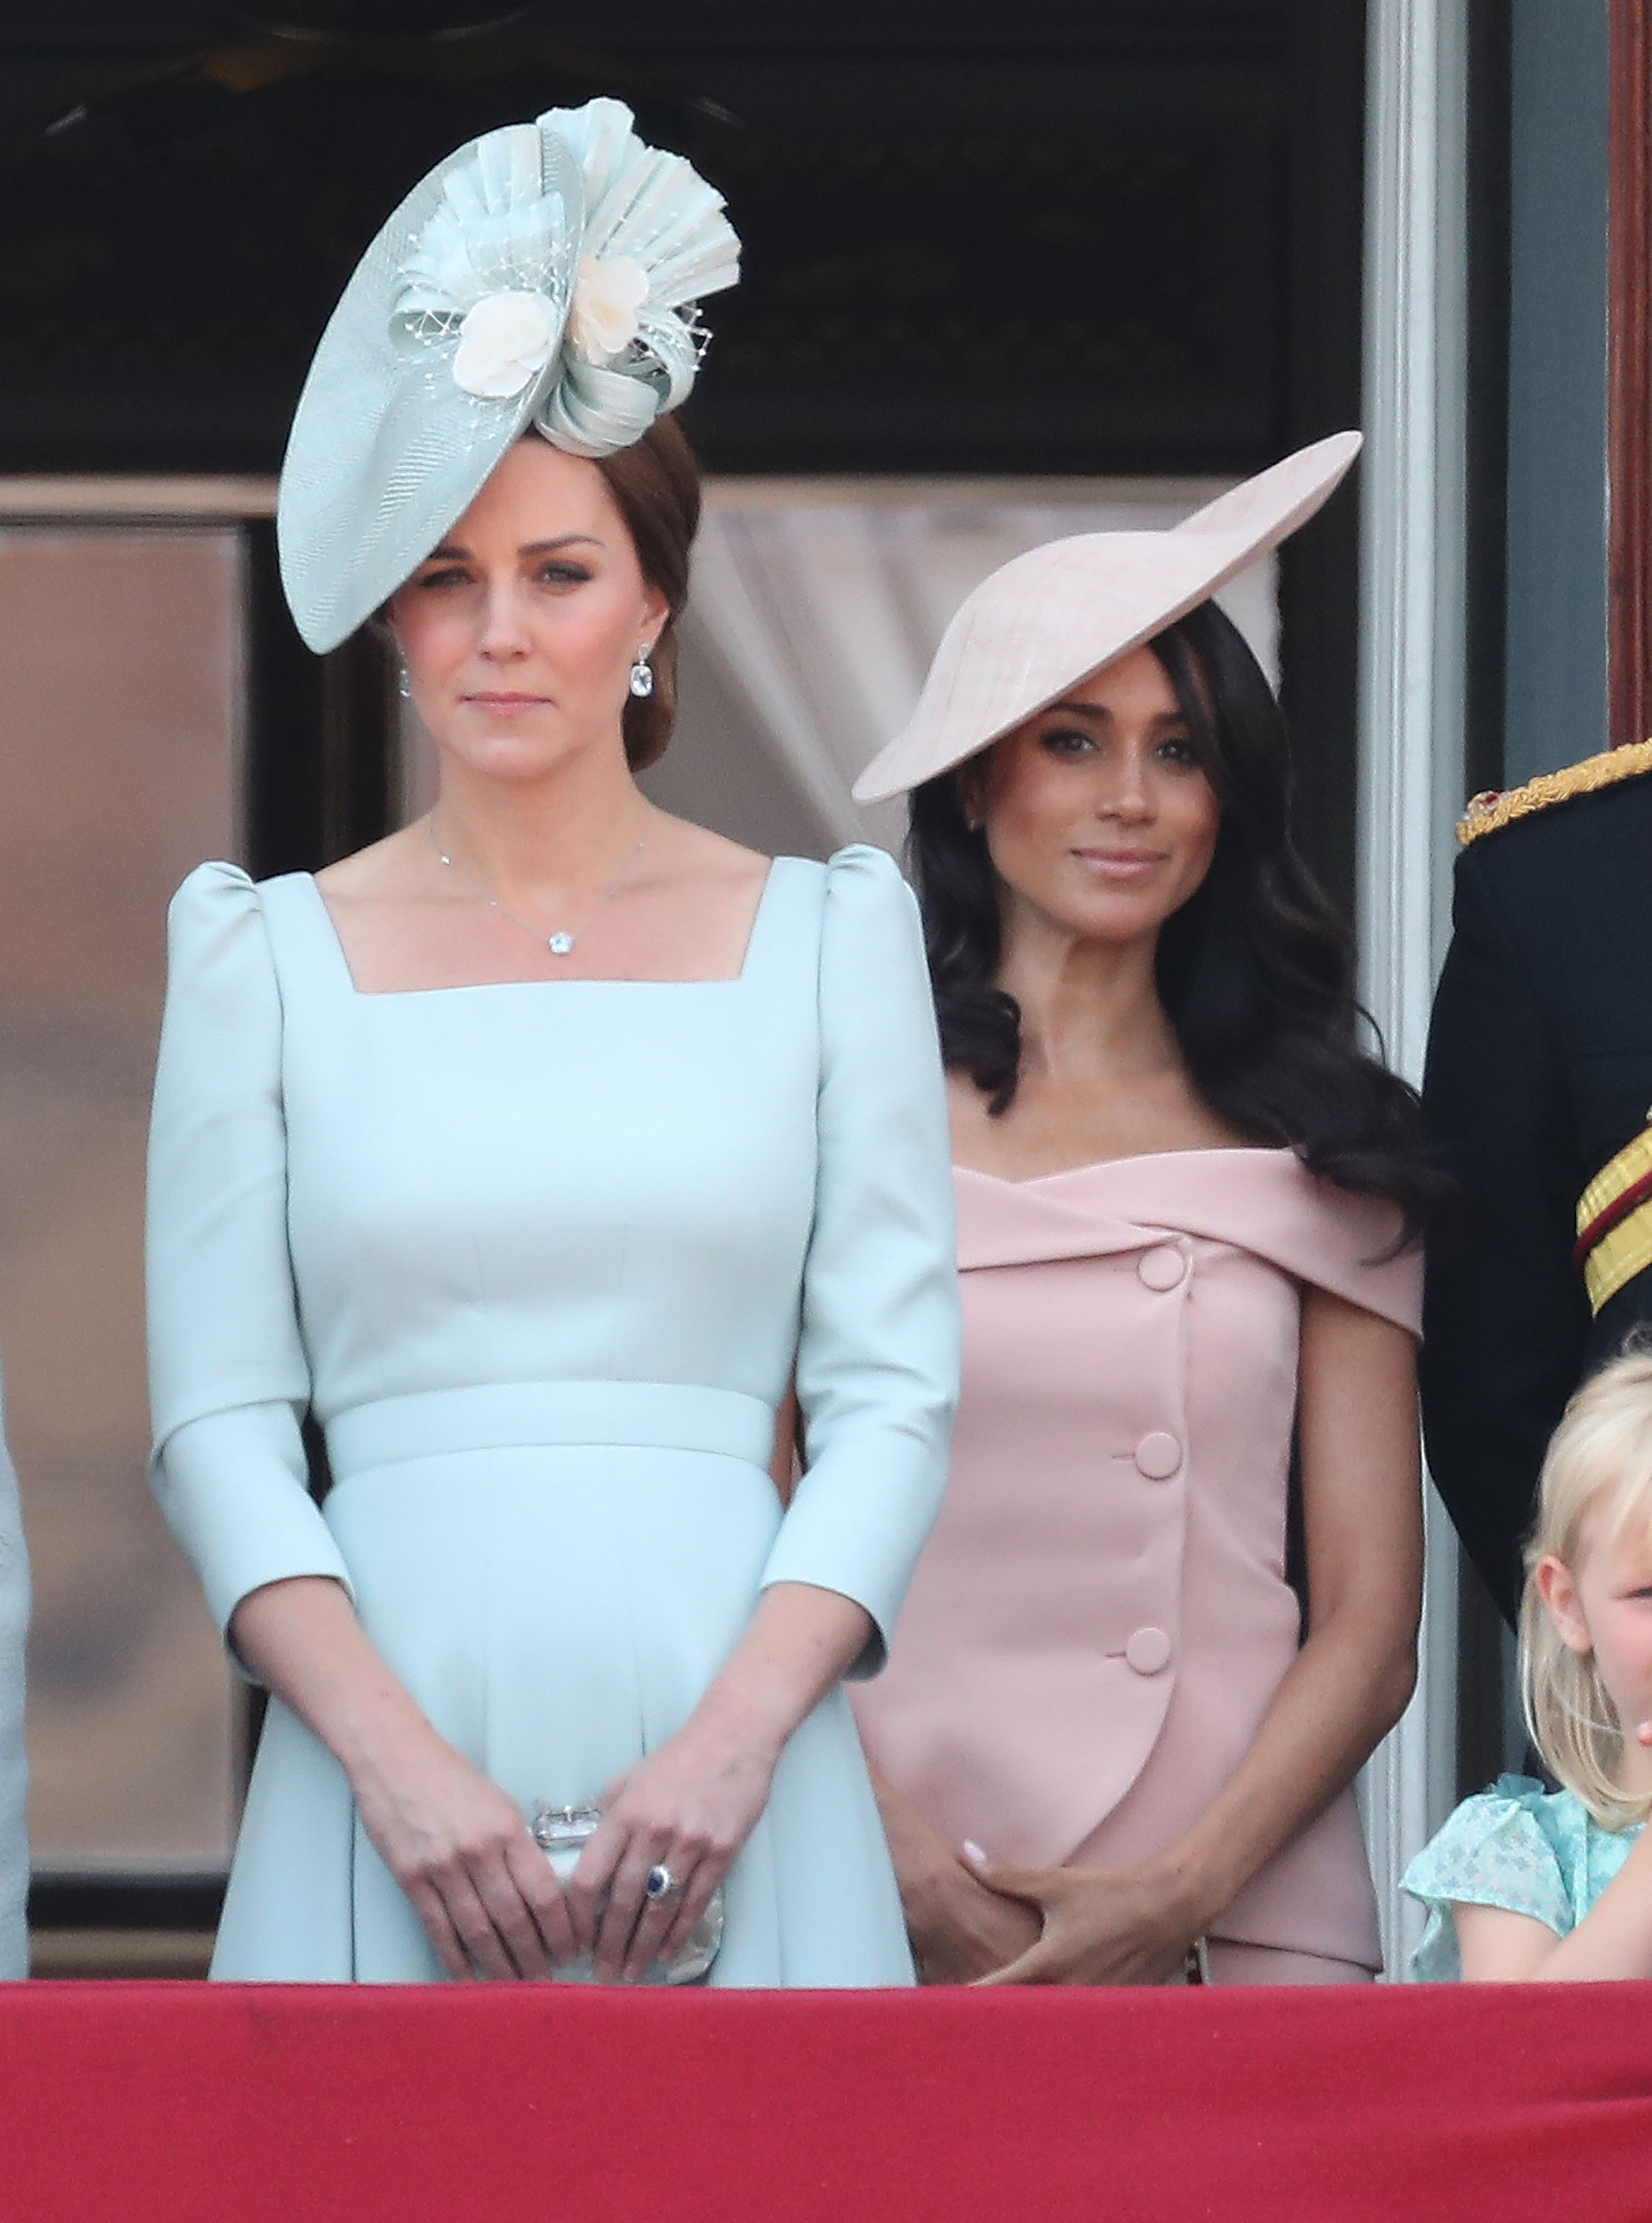 Kate Middleton, the Duchess of Cambridge, and Meghan Markle, Duchess of Sussex, on the balcony of Buckingham Palace during Trooping The Colour on June 9, 2018 in London, England